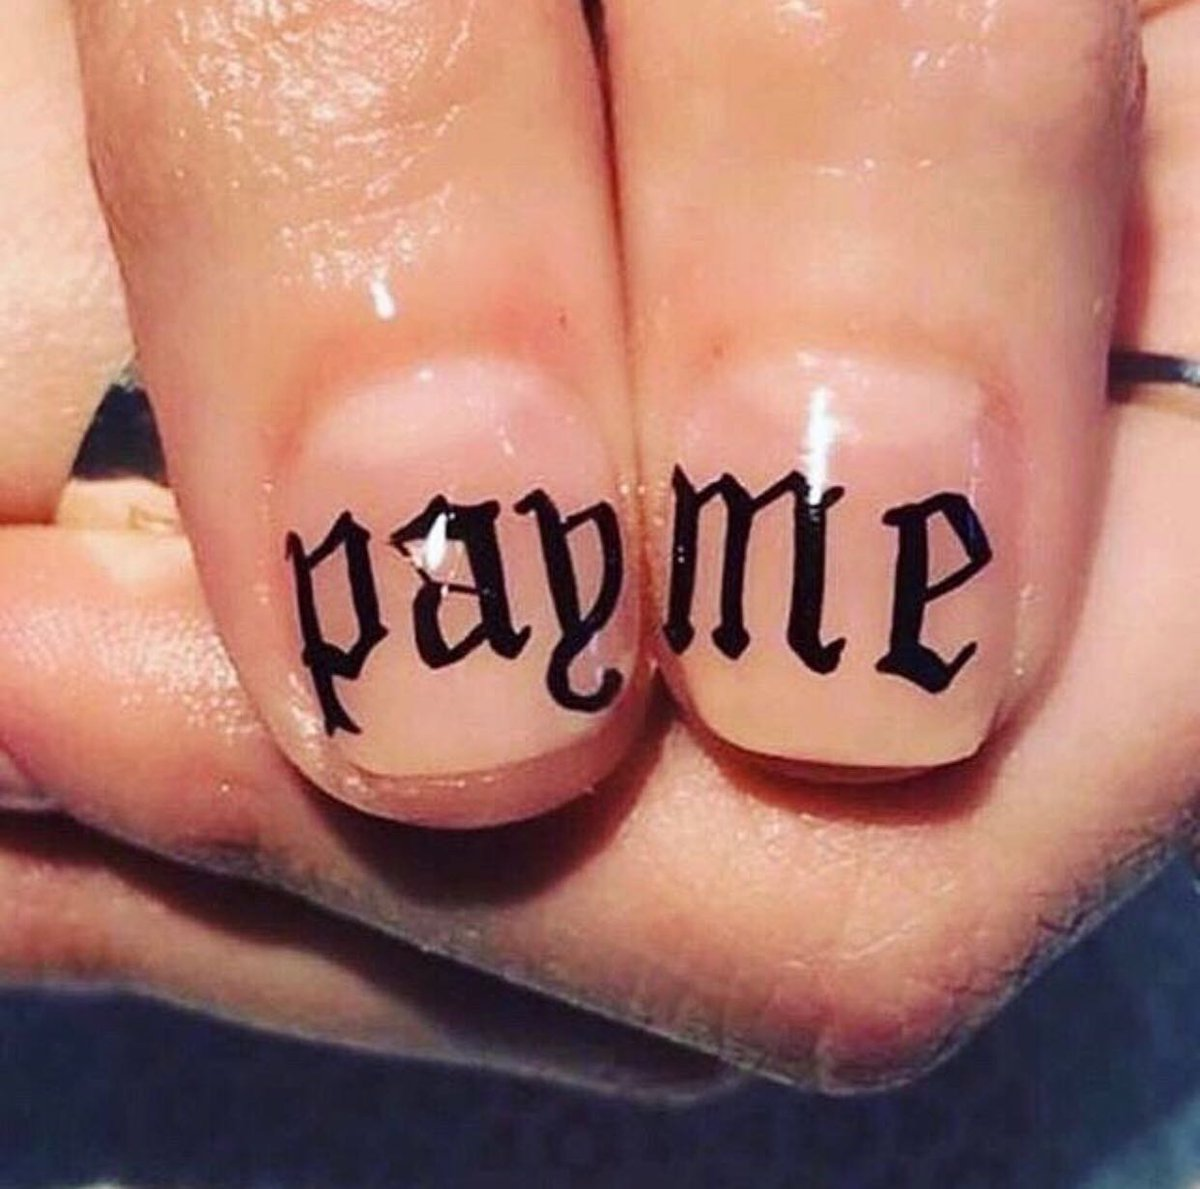 New nails, who dis? 💅💸